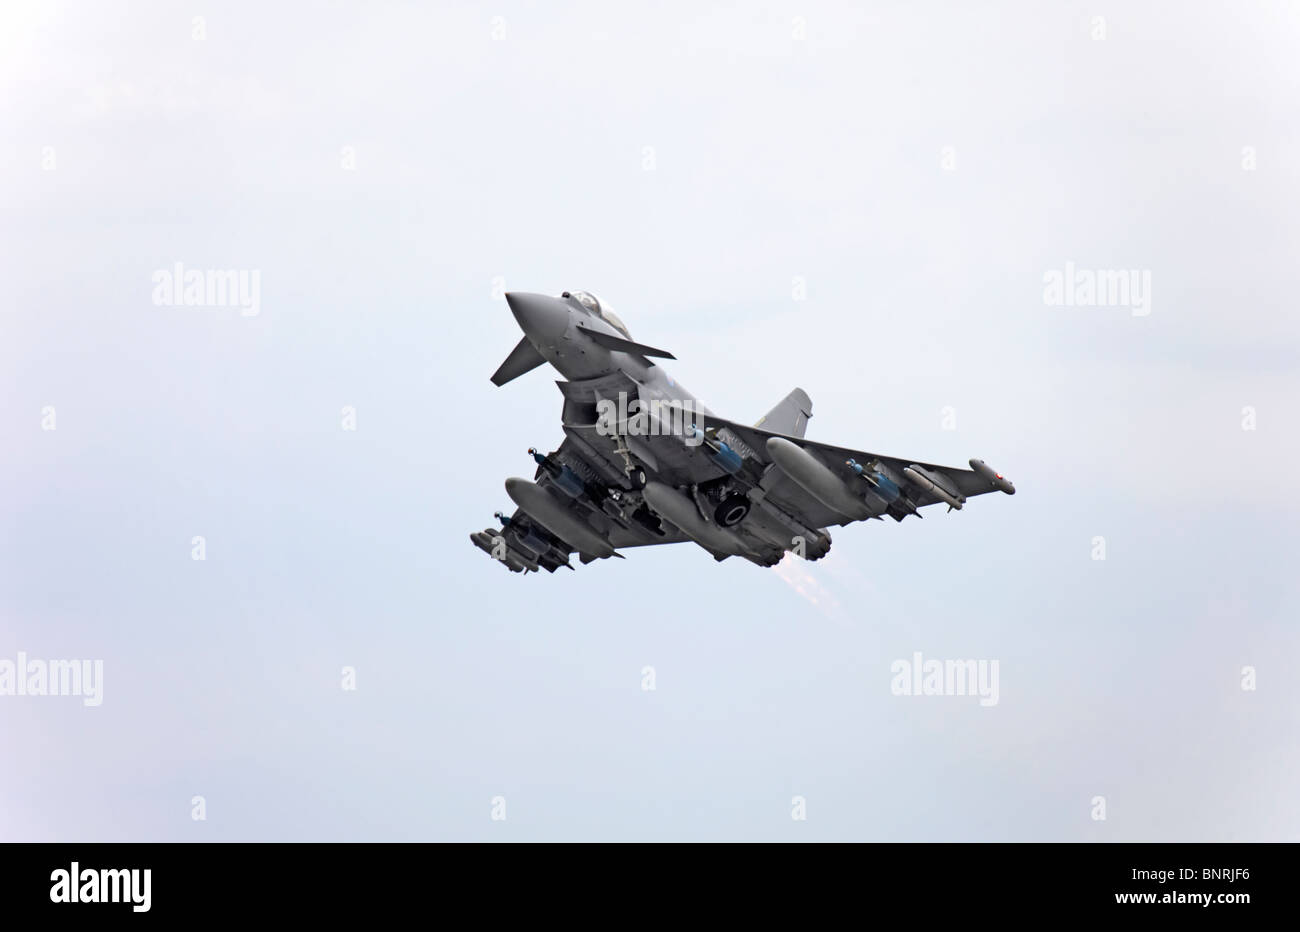 Farnborough BAE Systems Eurofighter Typhoon full weapons load - Stock Image